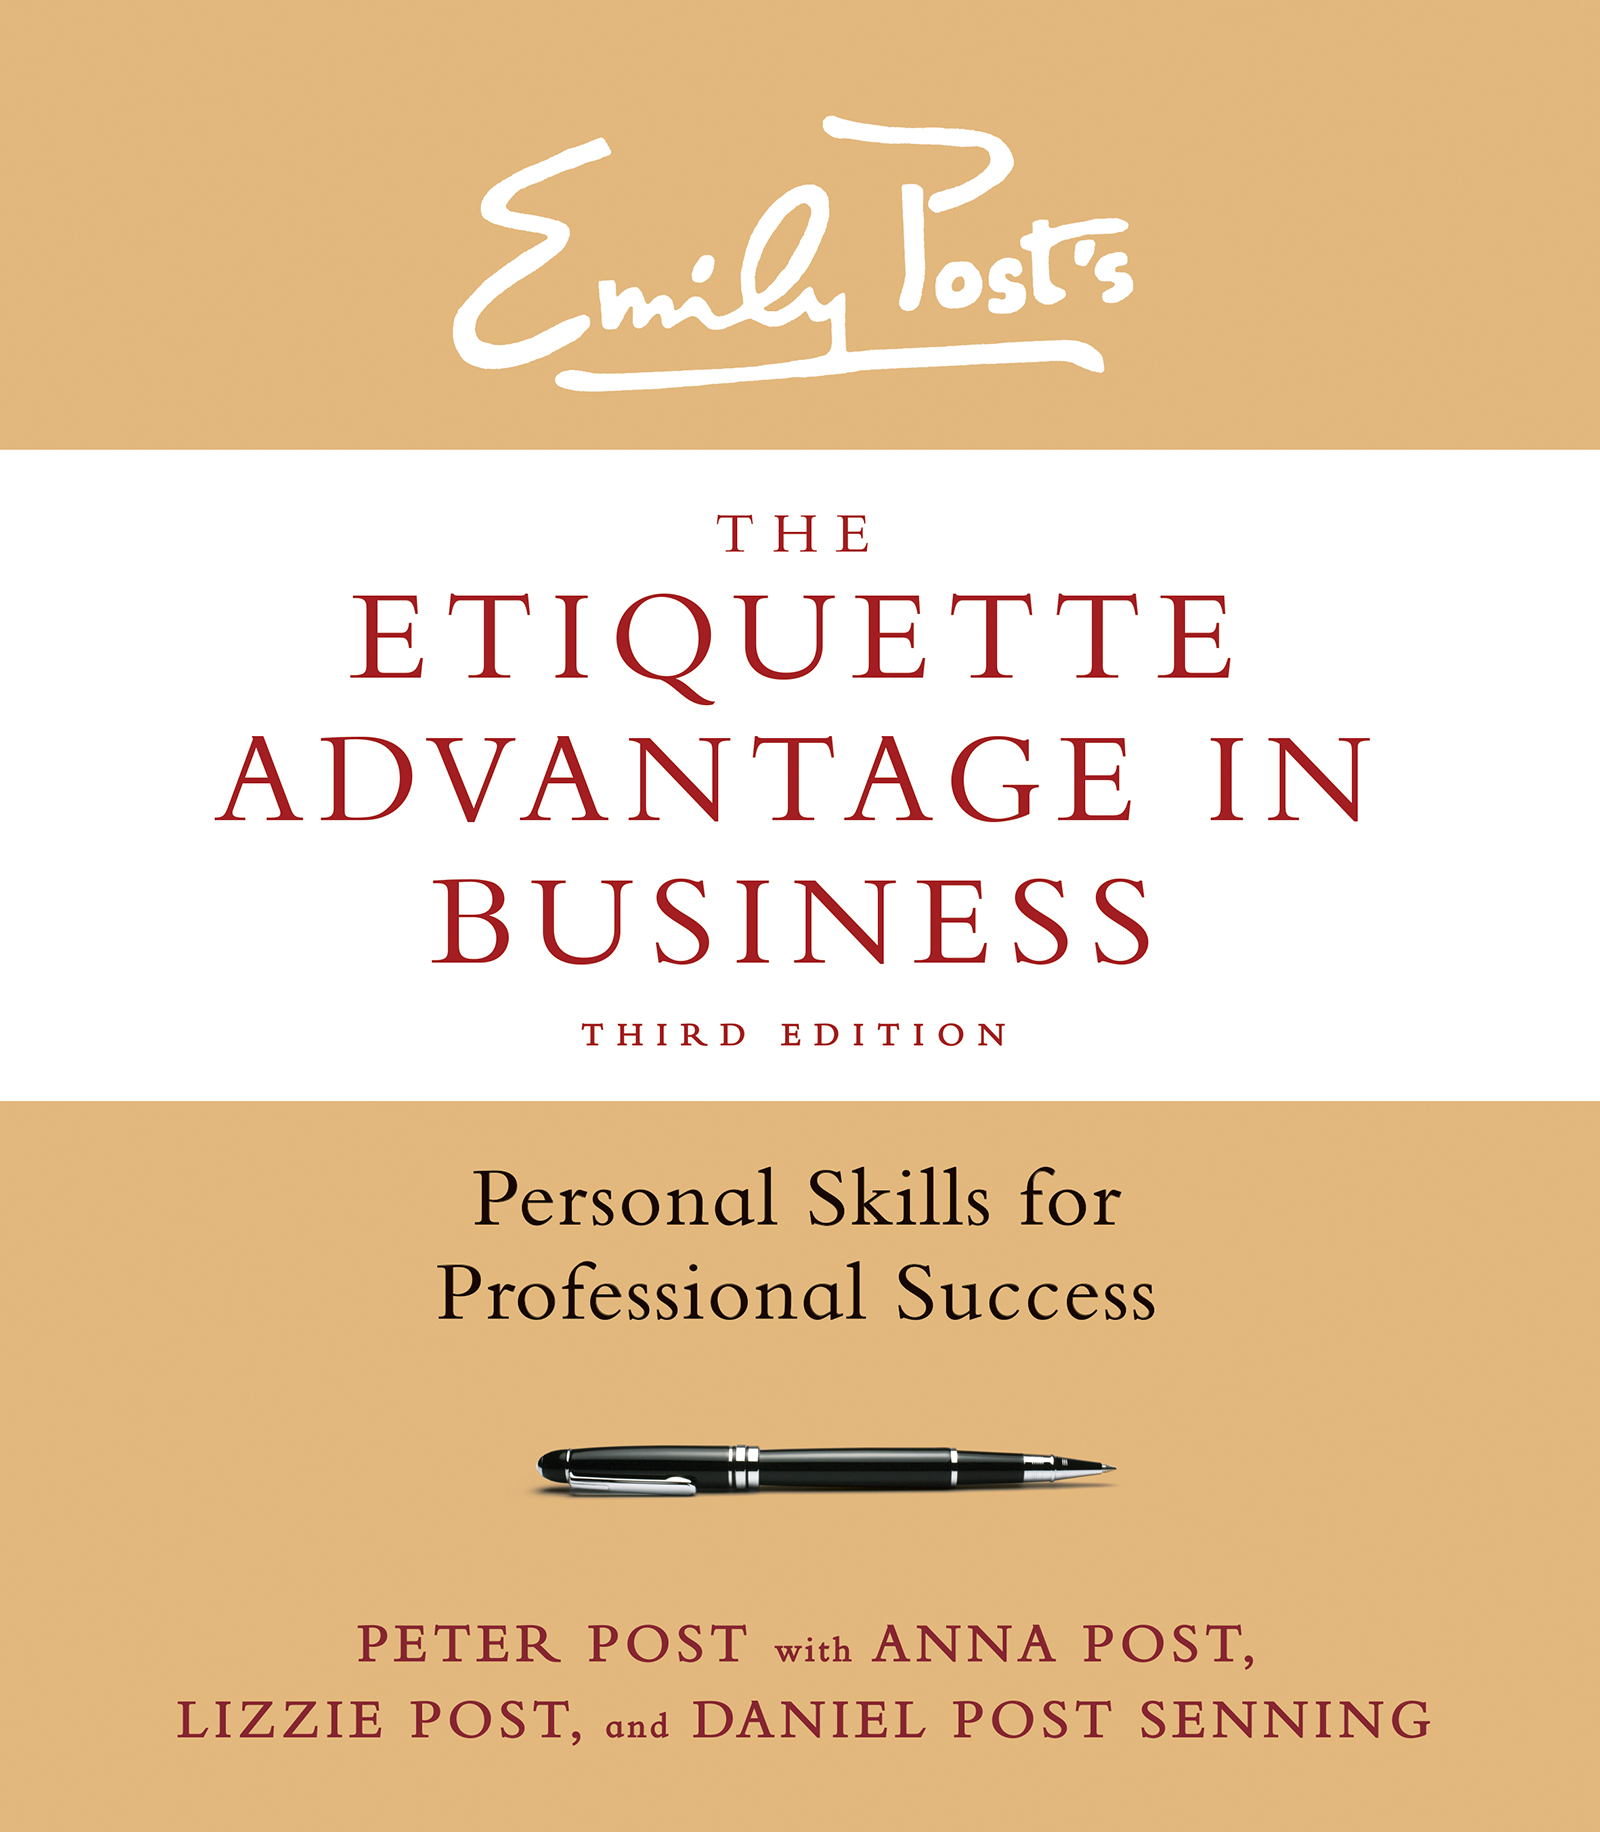 Download Ebook The Etiquette Advantage in Business, Third Edition by Peter Post Pdf